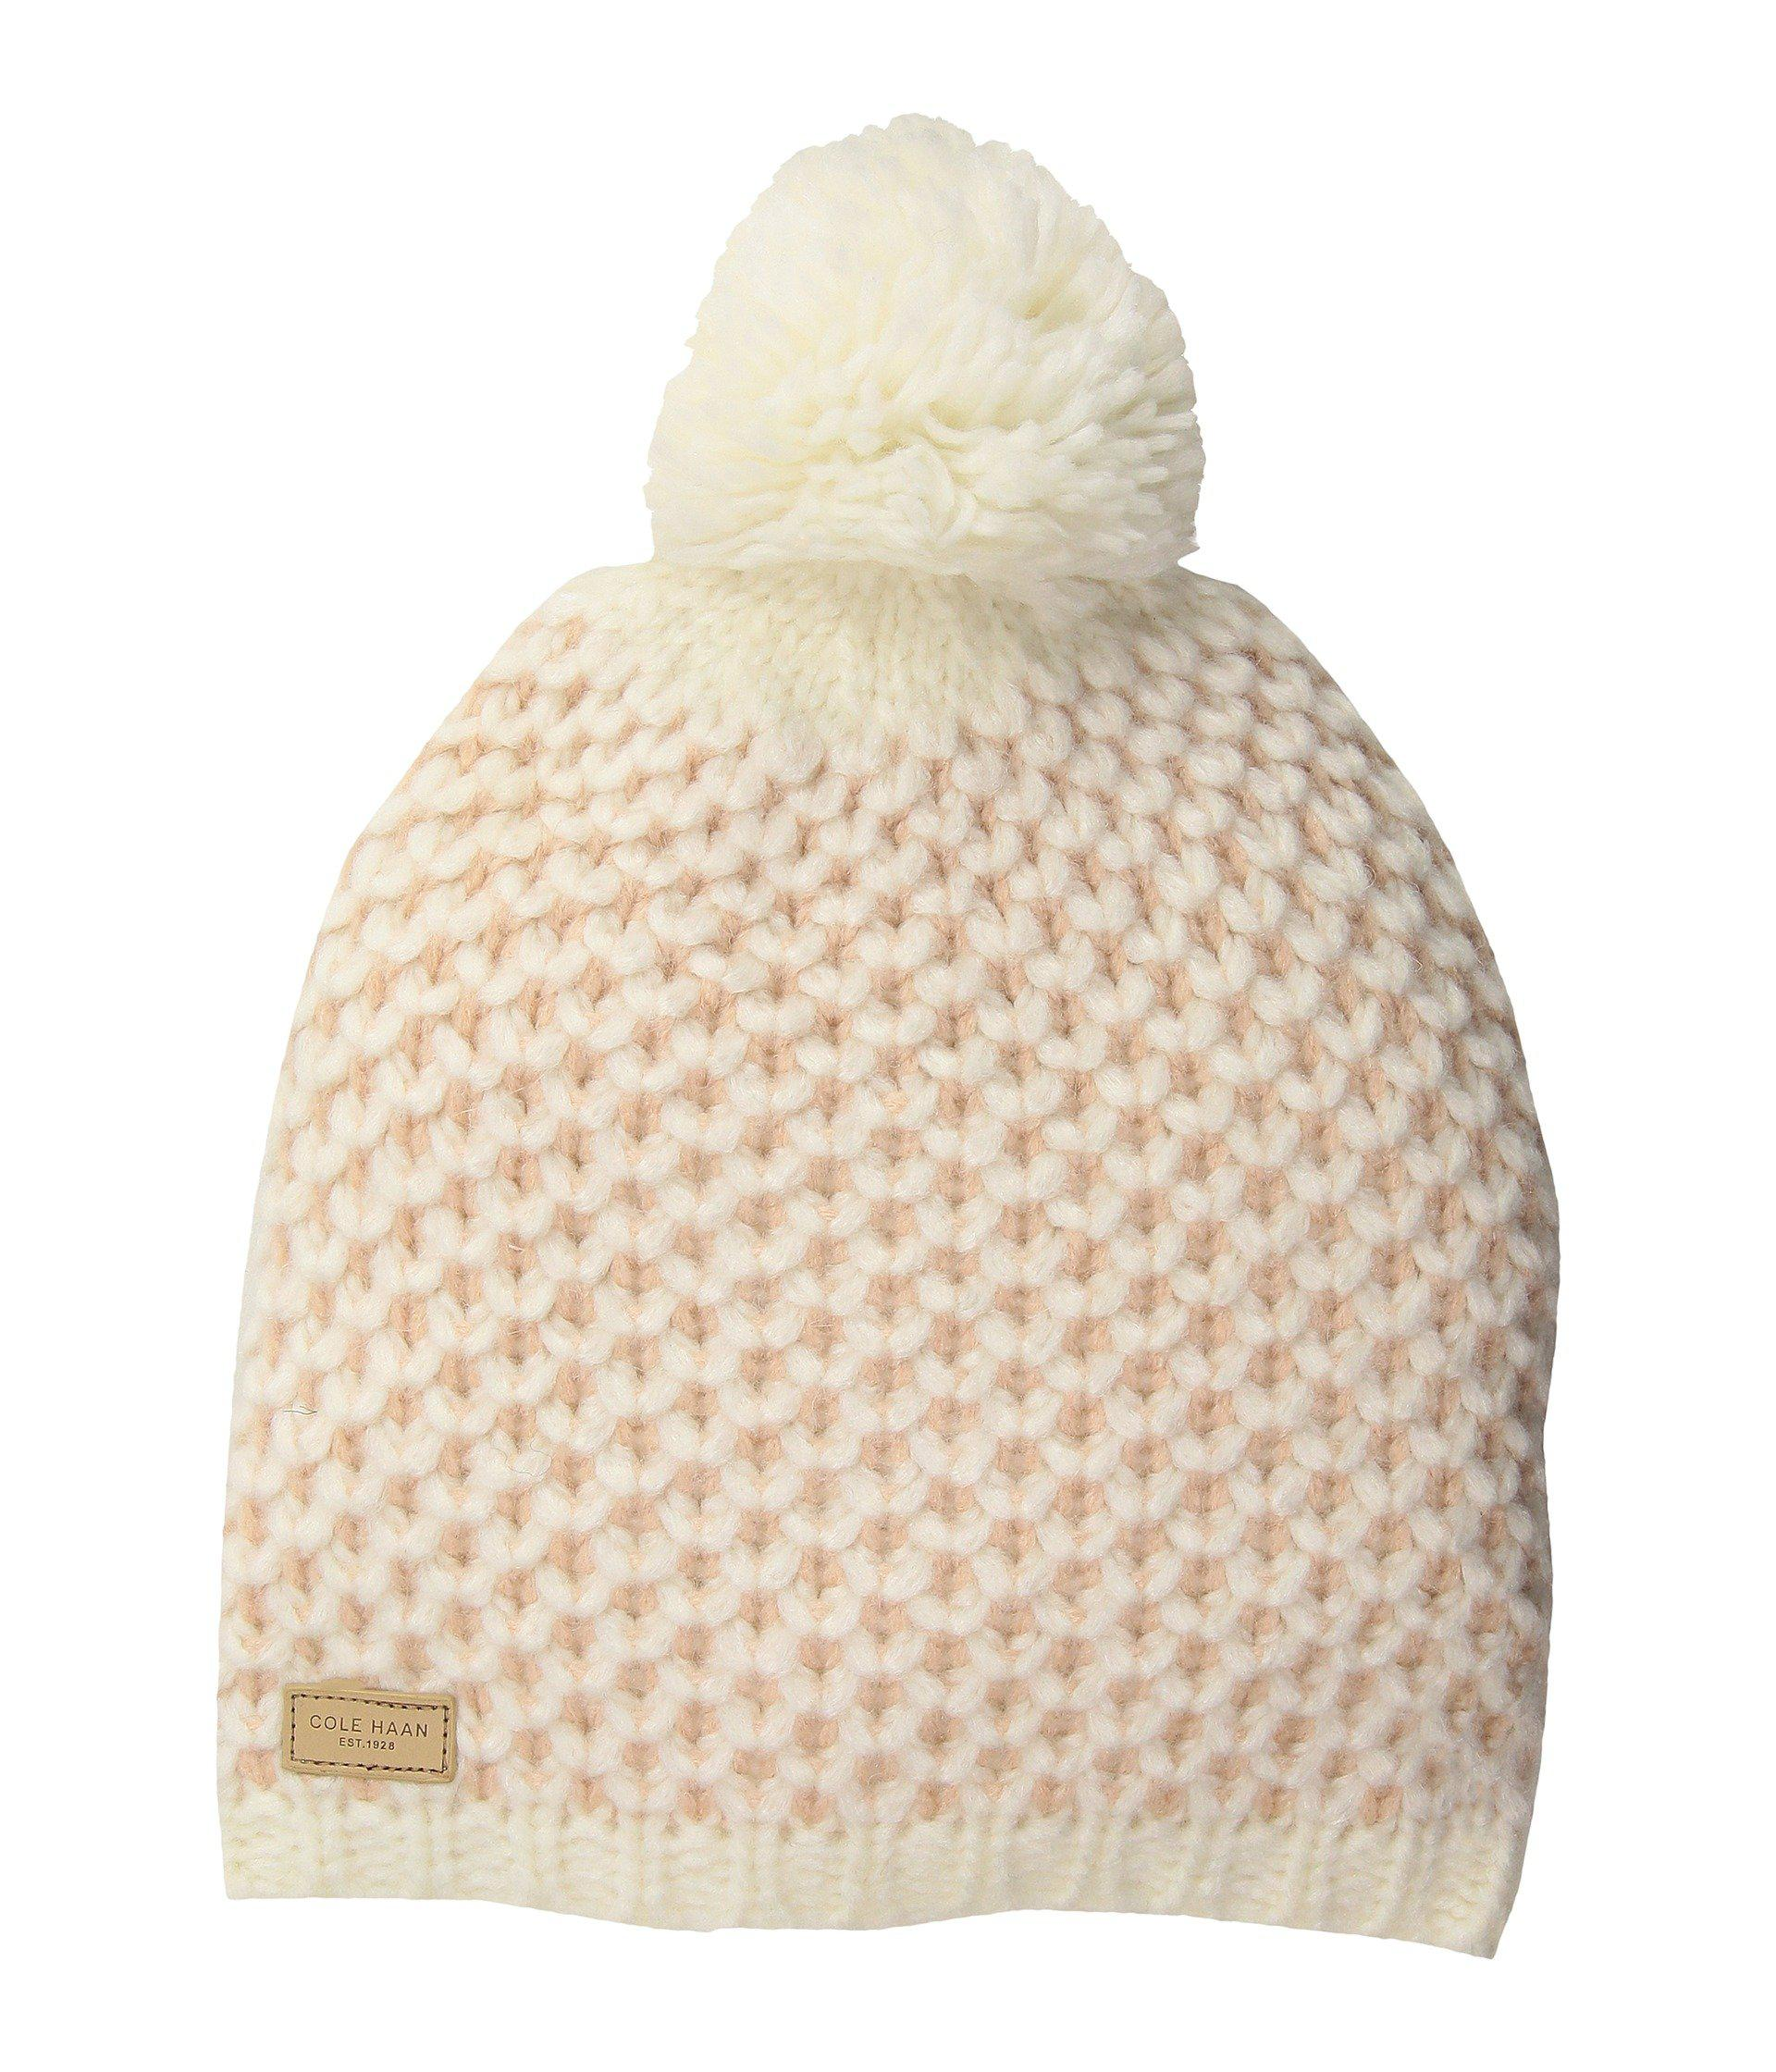 799a43542 Lyst - Cole Haan Chessboard Tuck Stitch Beanie in Natural